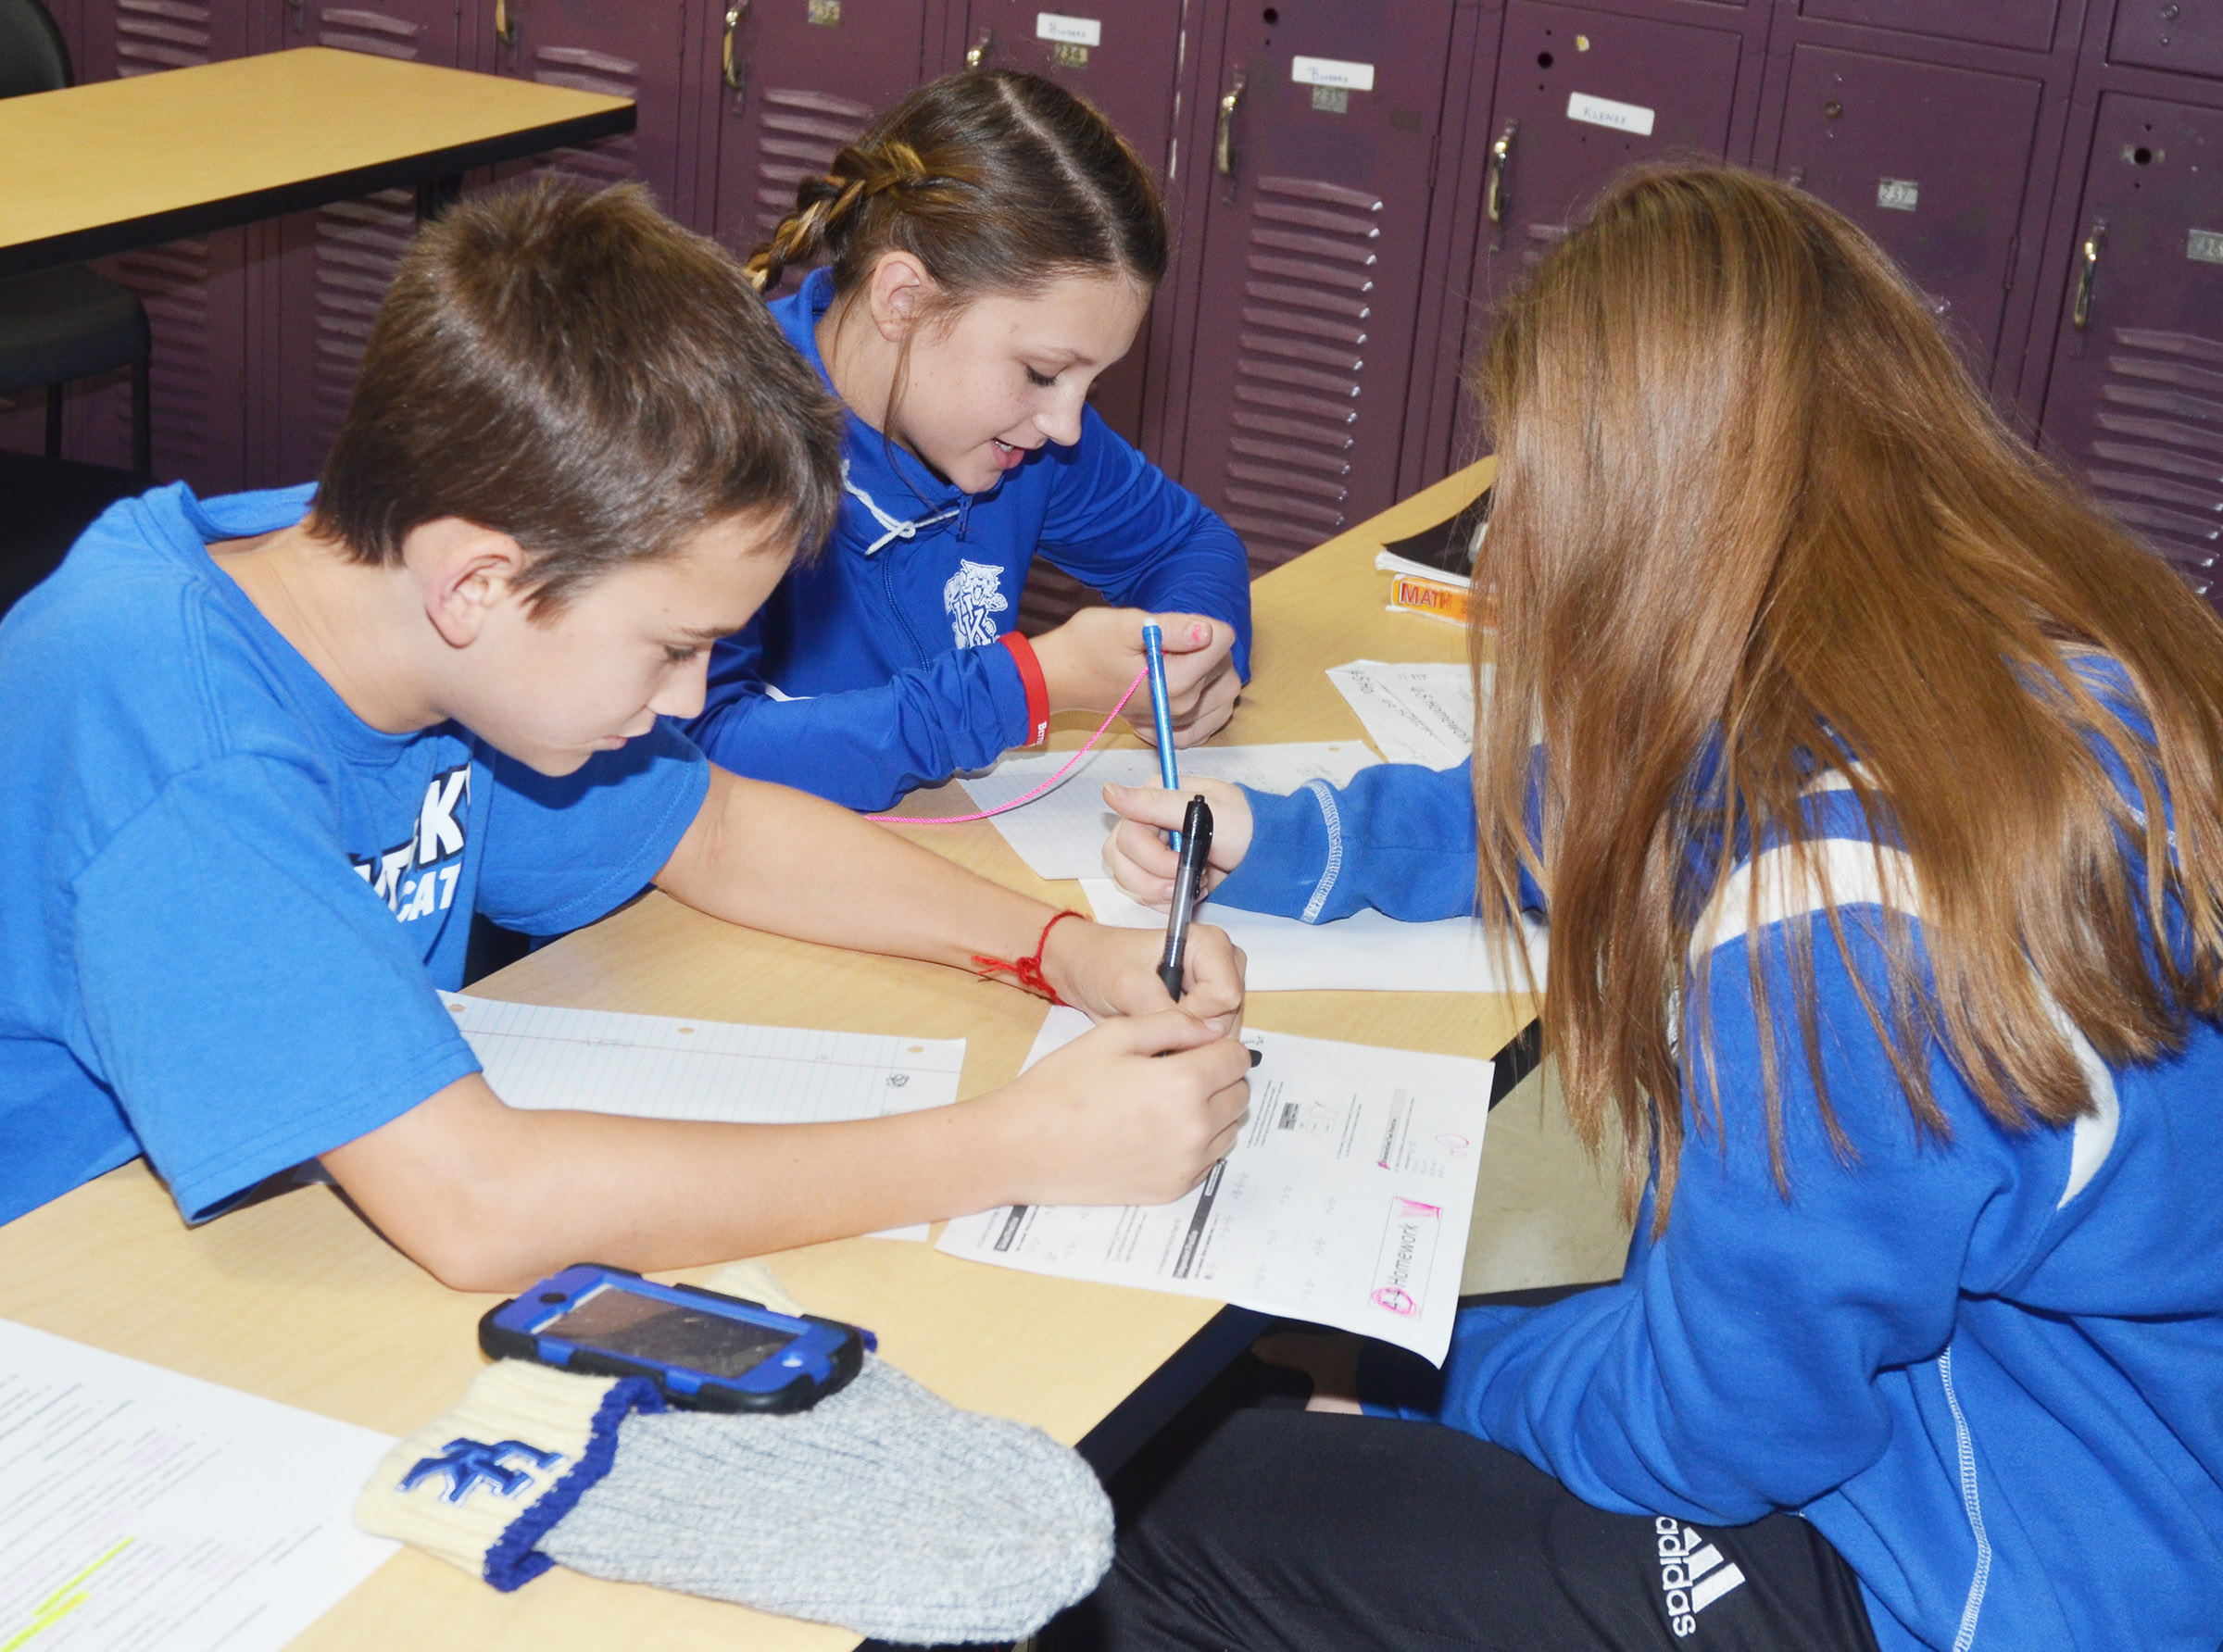 From left, CMS seventh-graders Camren Vicari, Alexis Byers and Alysa Howard work on a project together during the after-school study session on Friday, Oct. 27.